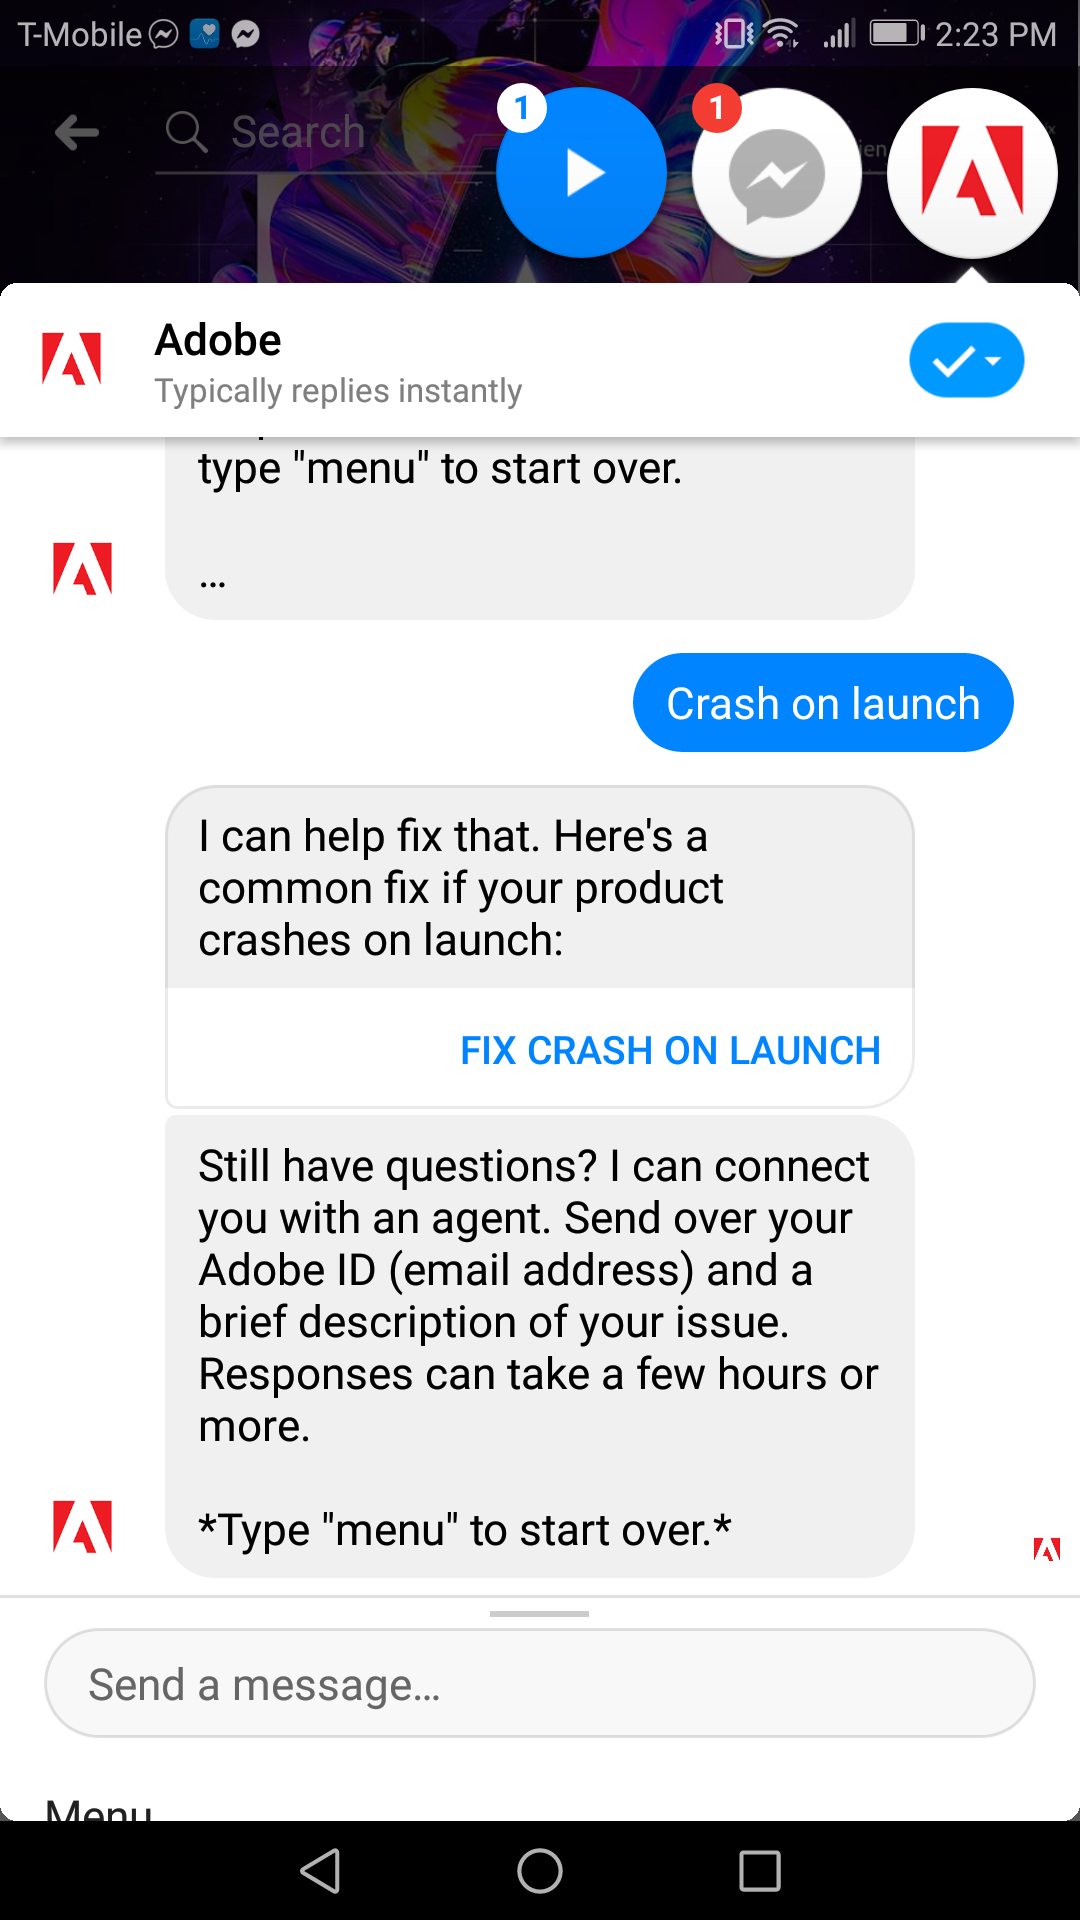 Adobe's bot is helpful designed for troubleshooting